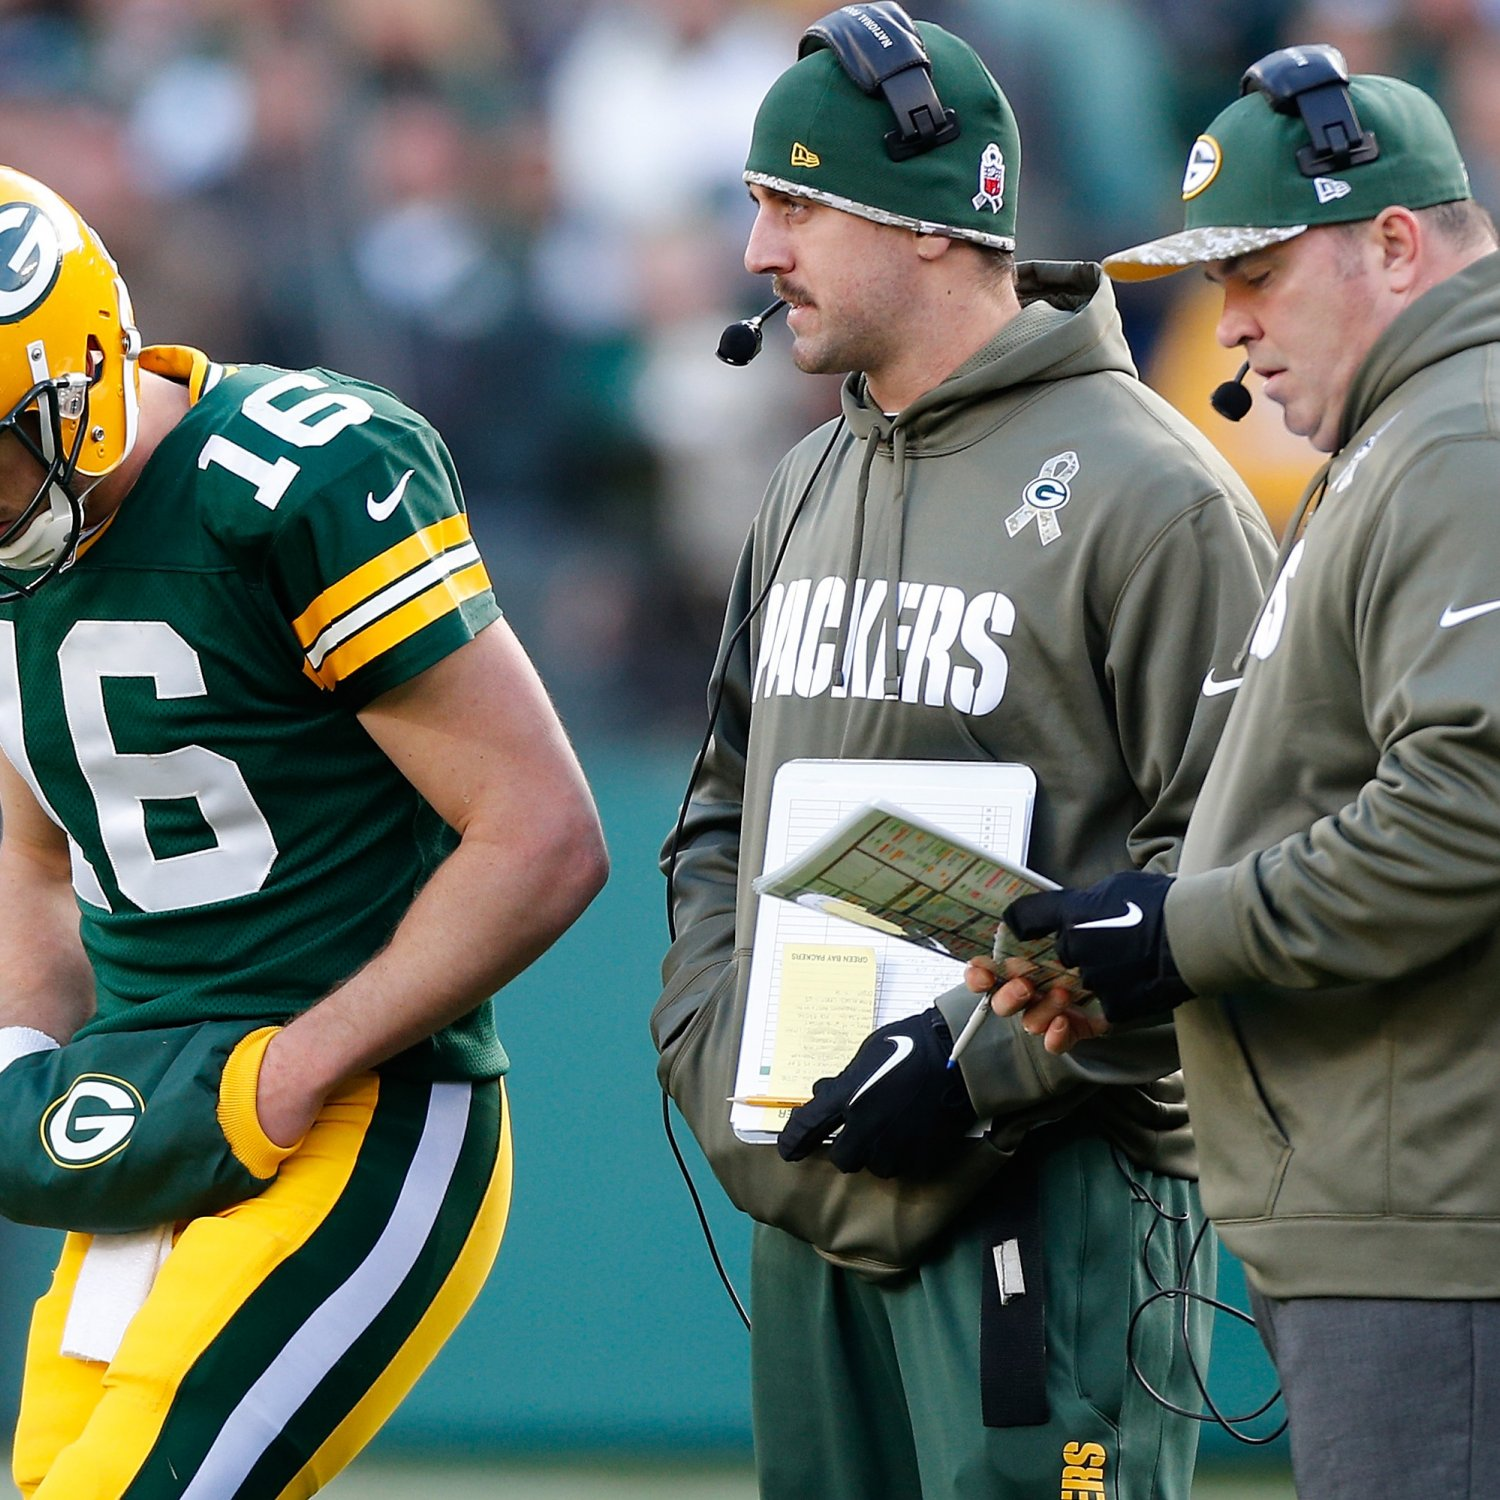 Week 11 Giants Vs Packers: Green Bay Packers: What You Need To Know Heading Into Week